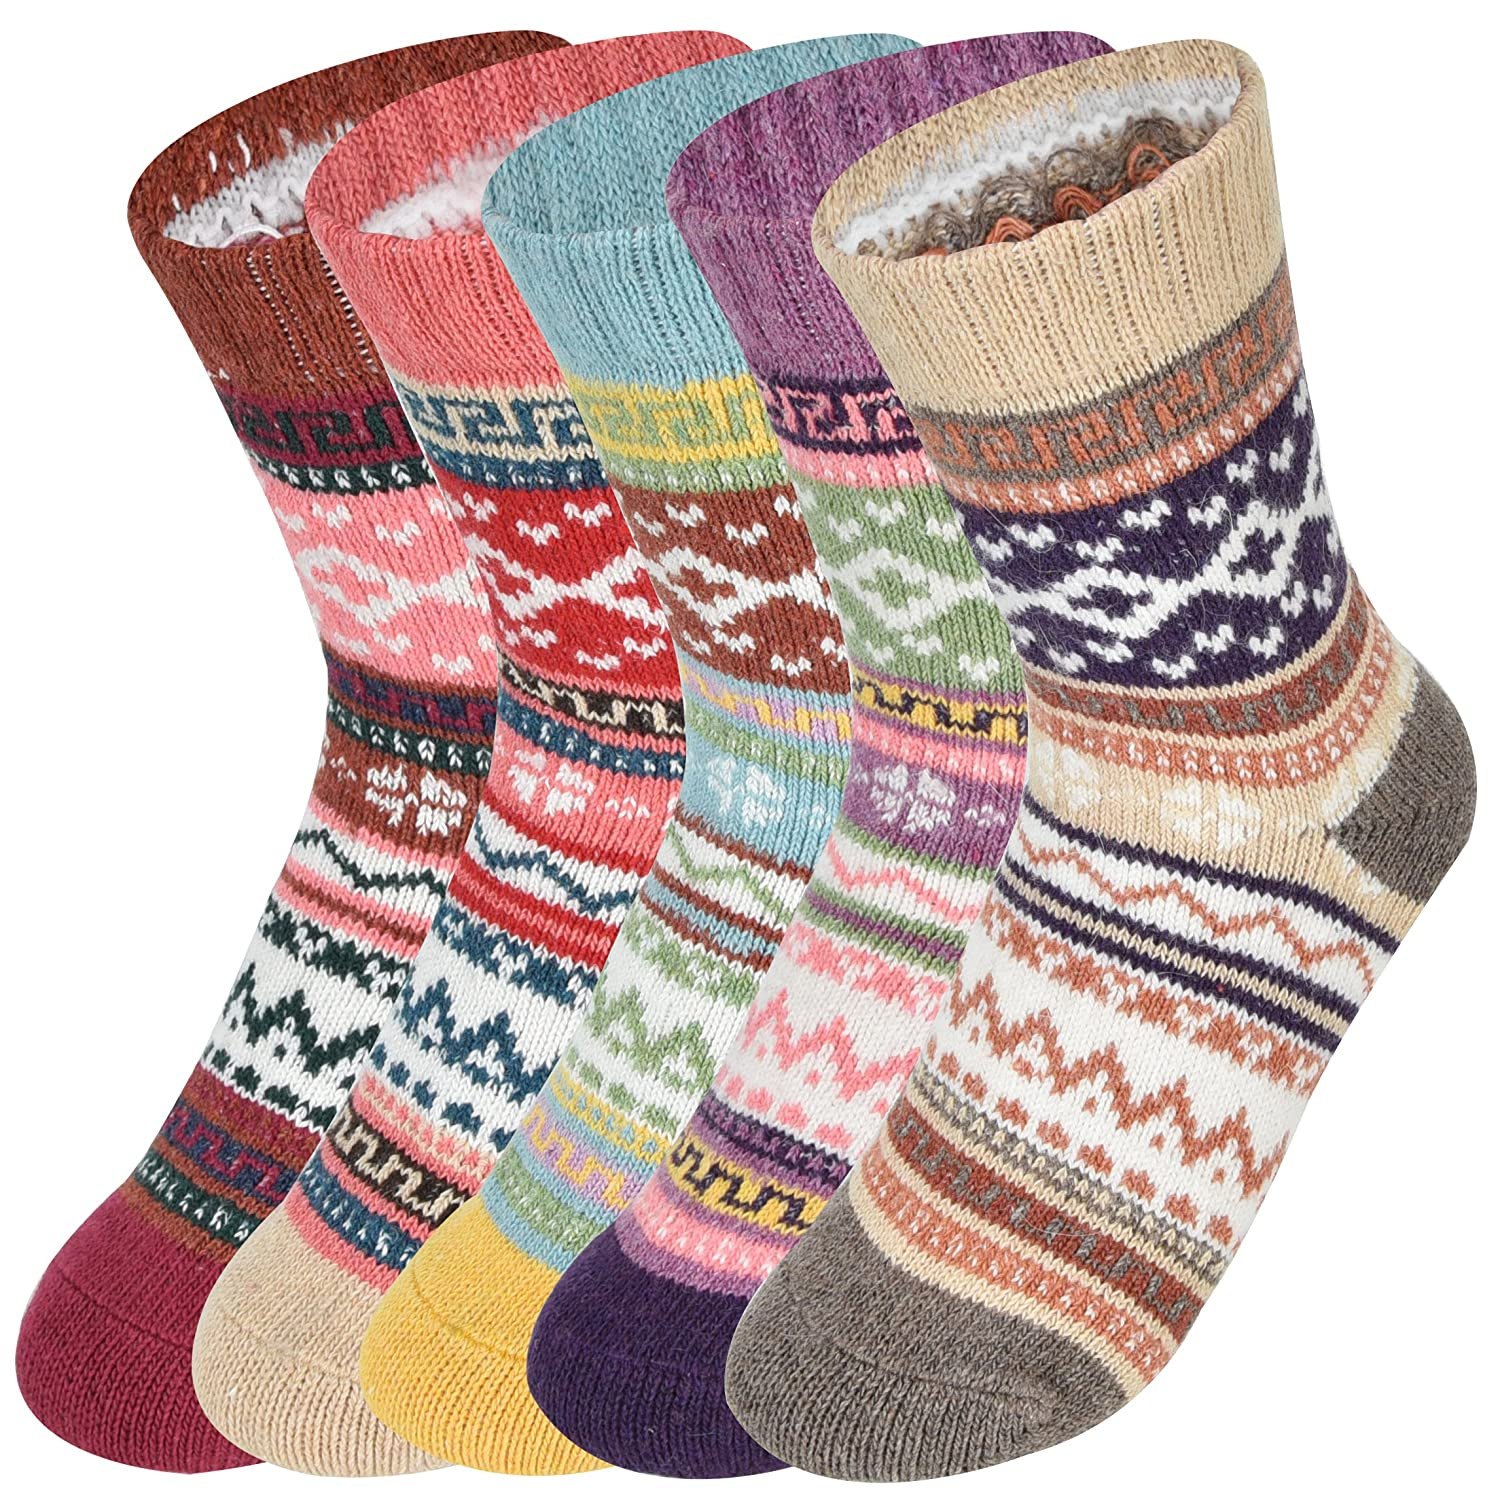 Women's Wool Socks 5 Pack Thick Knit Cotton Vintage Colorful Casual Fall Winter Crew Socks ¡­ BNS05369